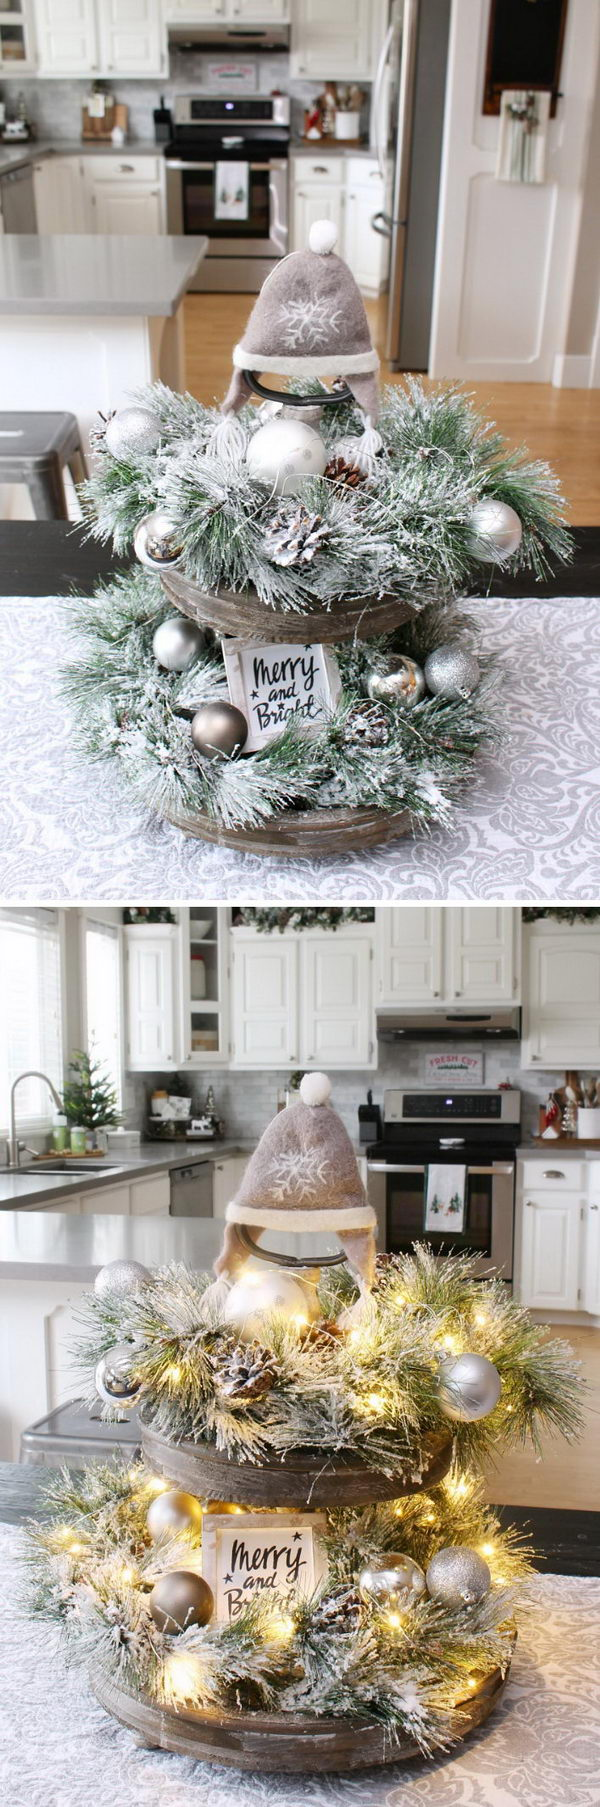 rustic light up christmas tray - Rustic Christmas Decor